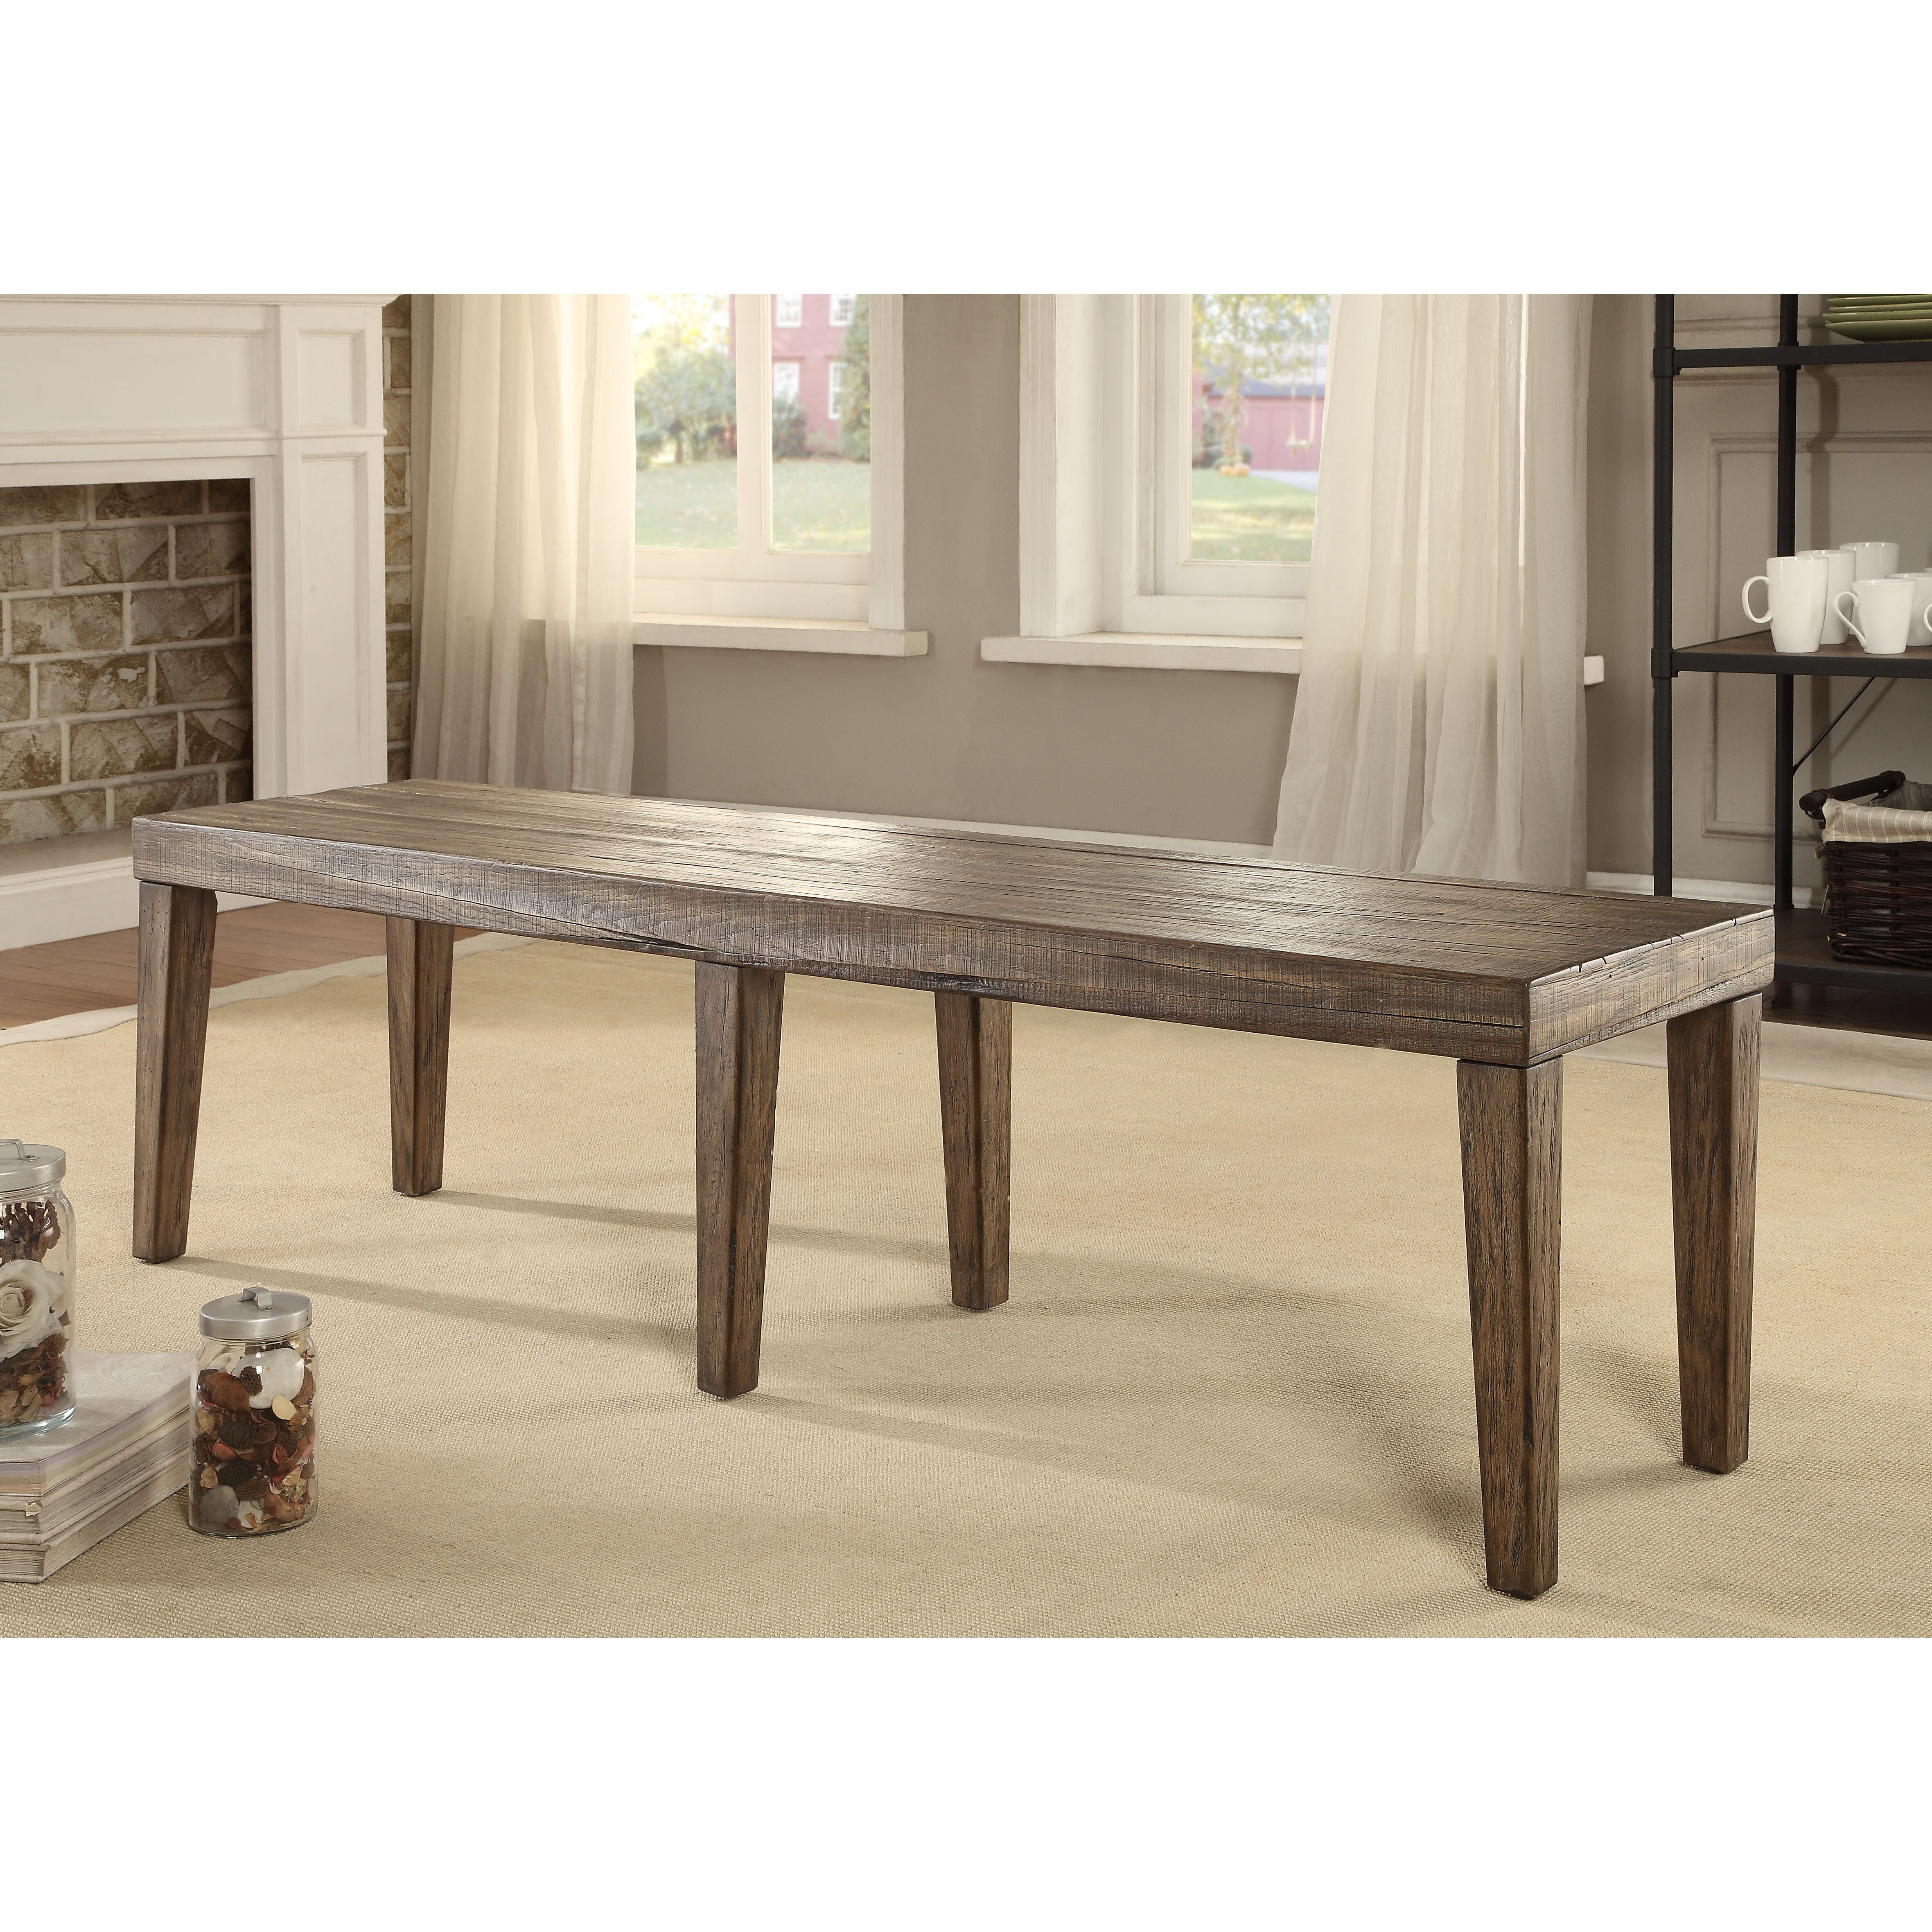 Canora Grey Shelby Wood Kitchen Bench & Reviews